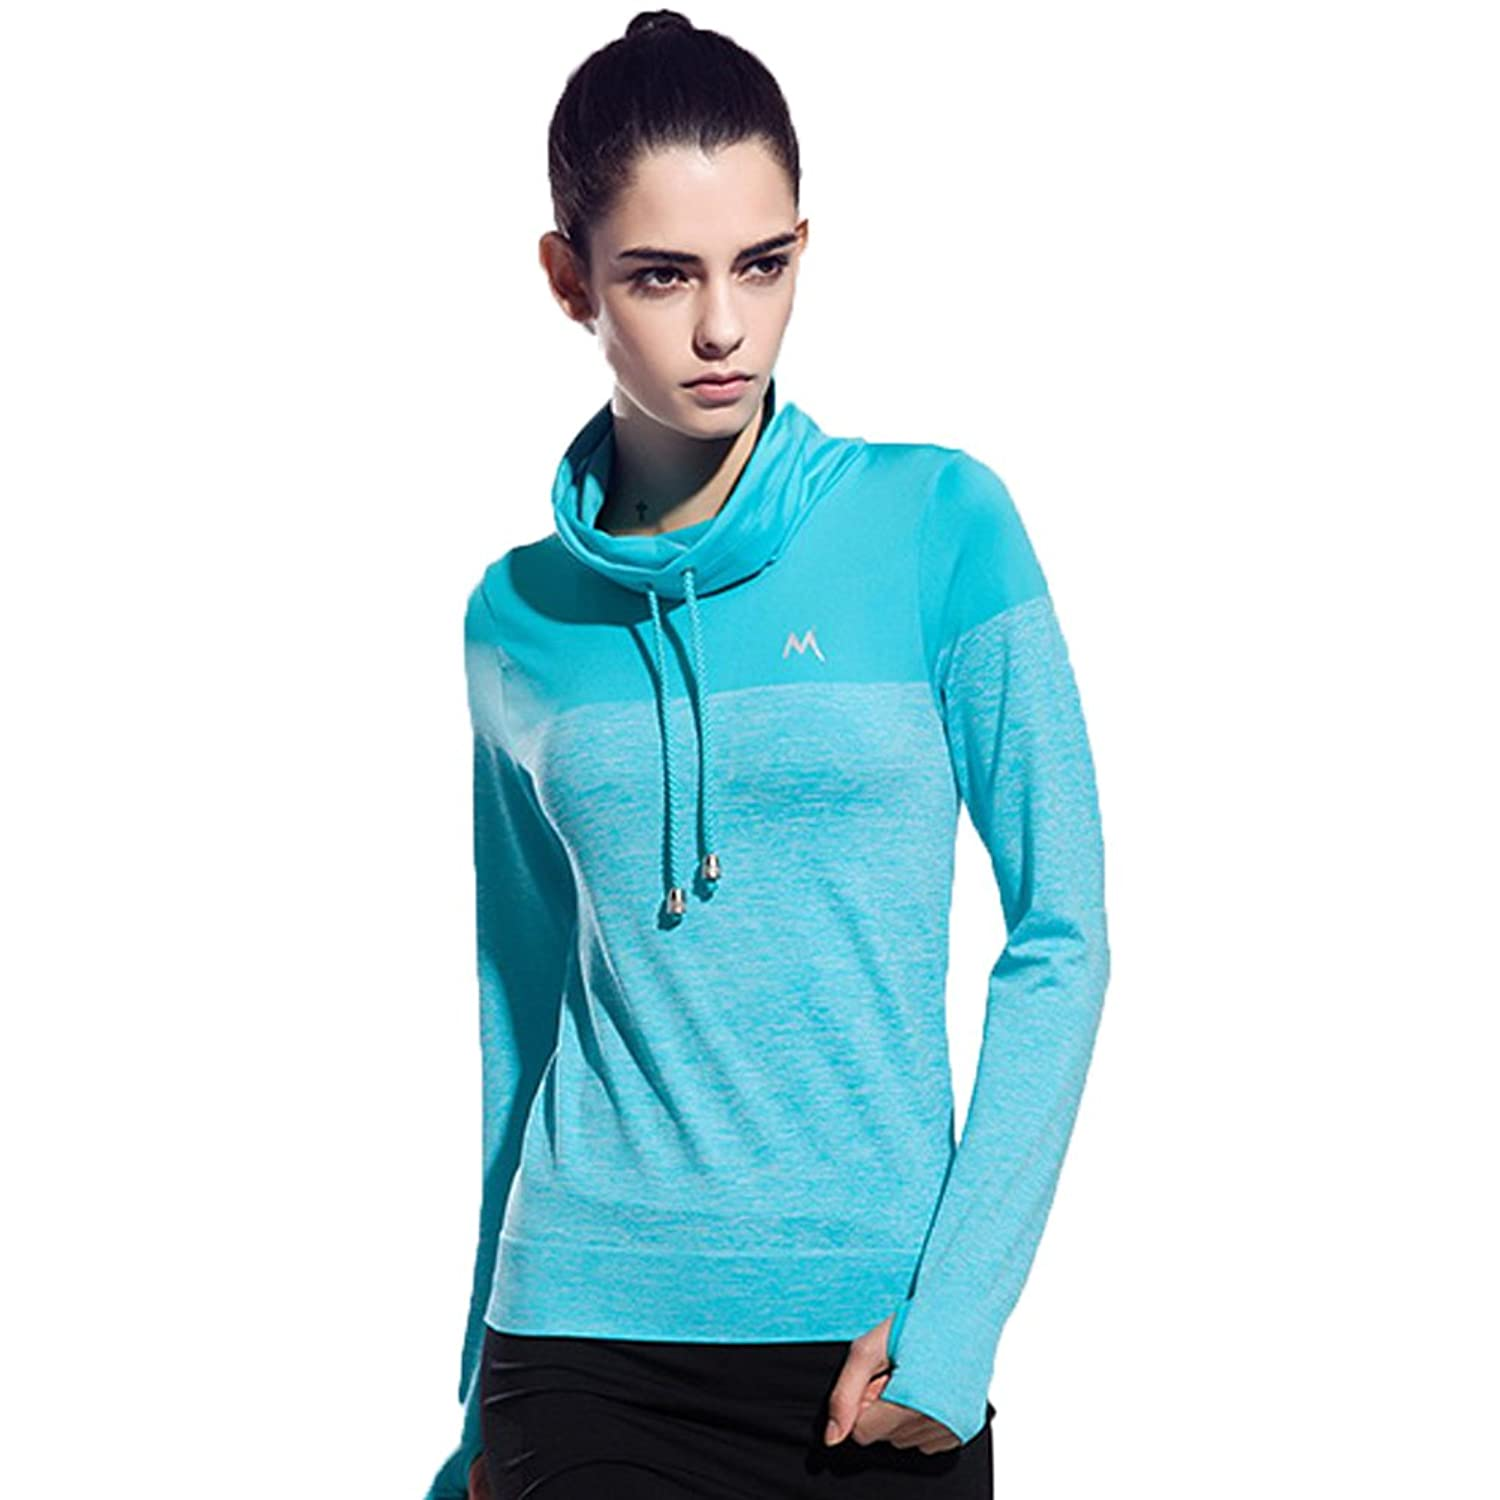 Turtle Collar Sport Long Sleeve Shirt Running Fitness Quick Dry Athletic T-Shirts